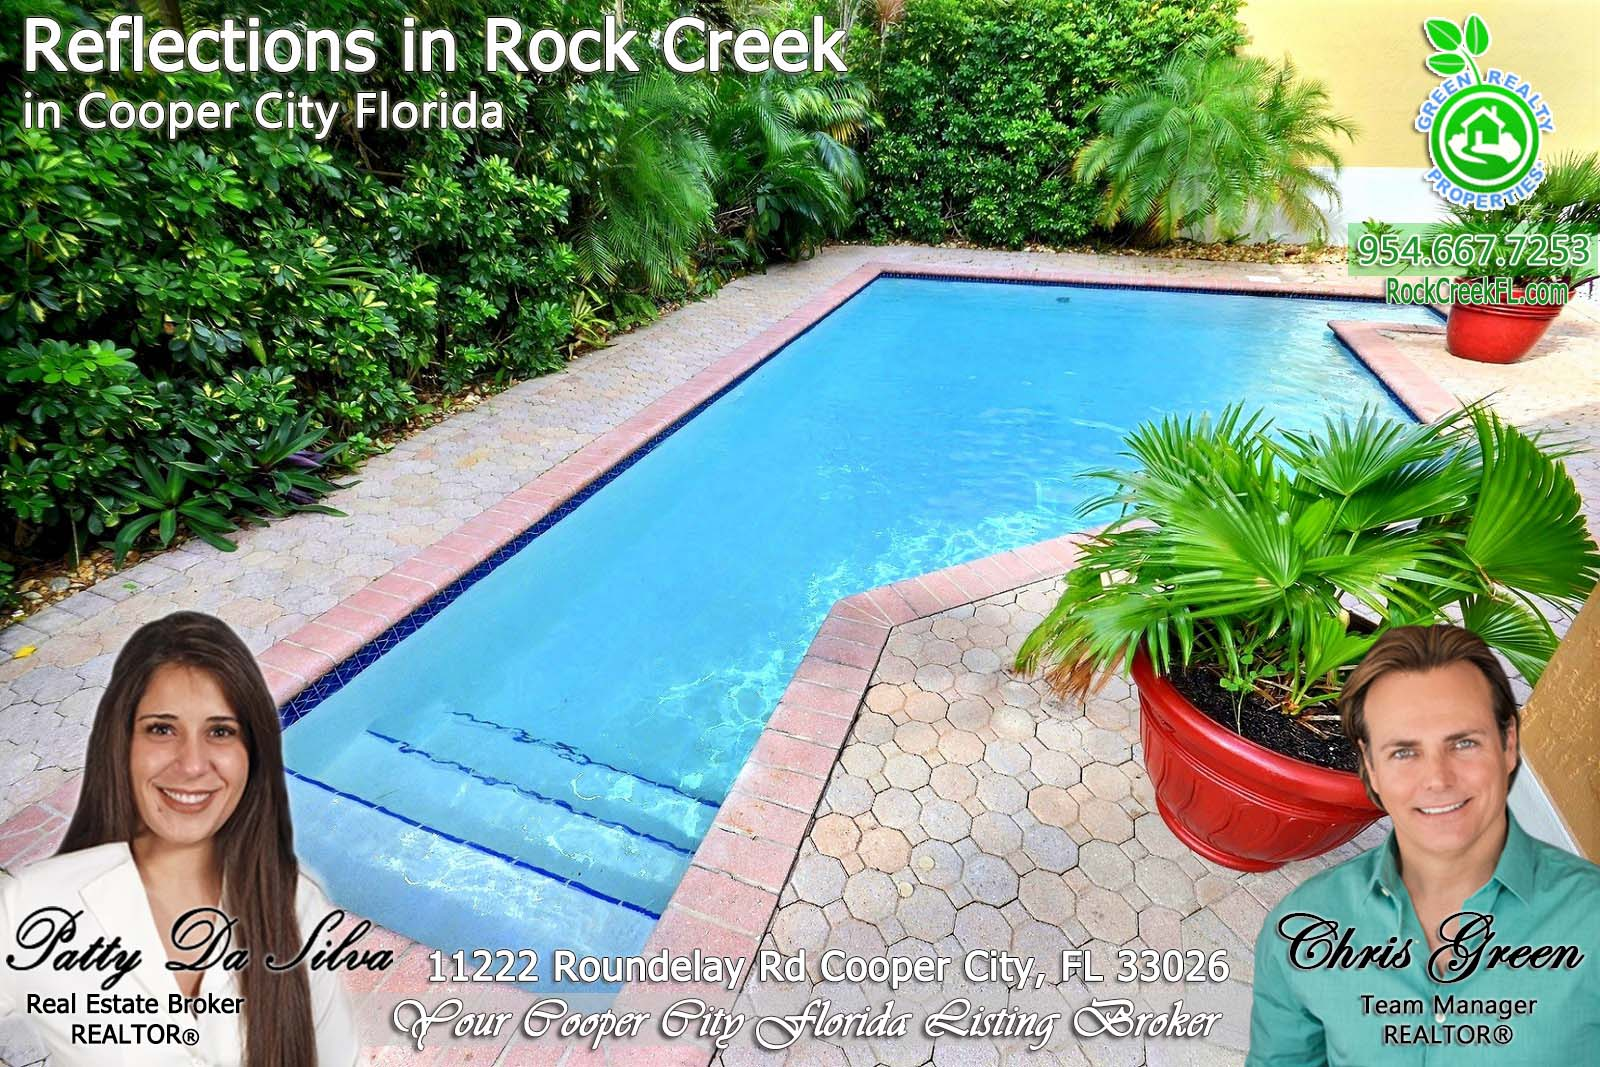 Cooper City Realty - Reflections in Rock Creek